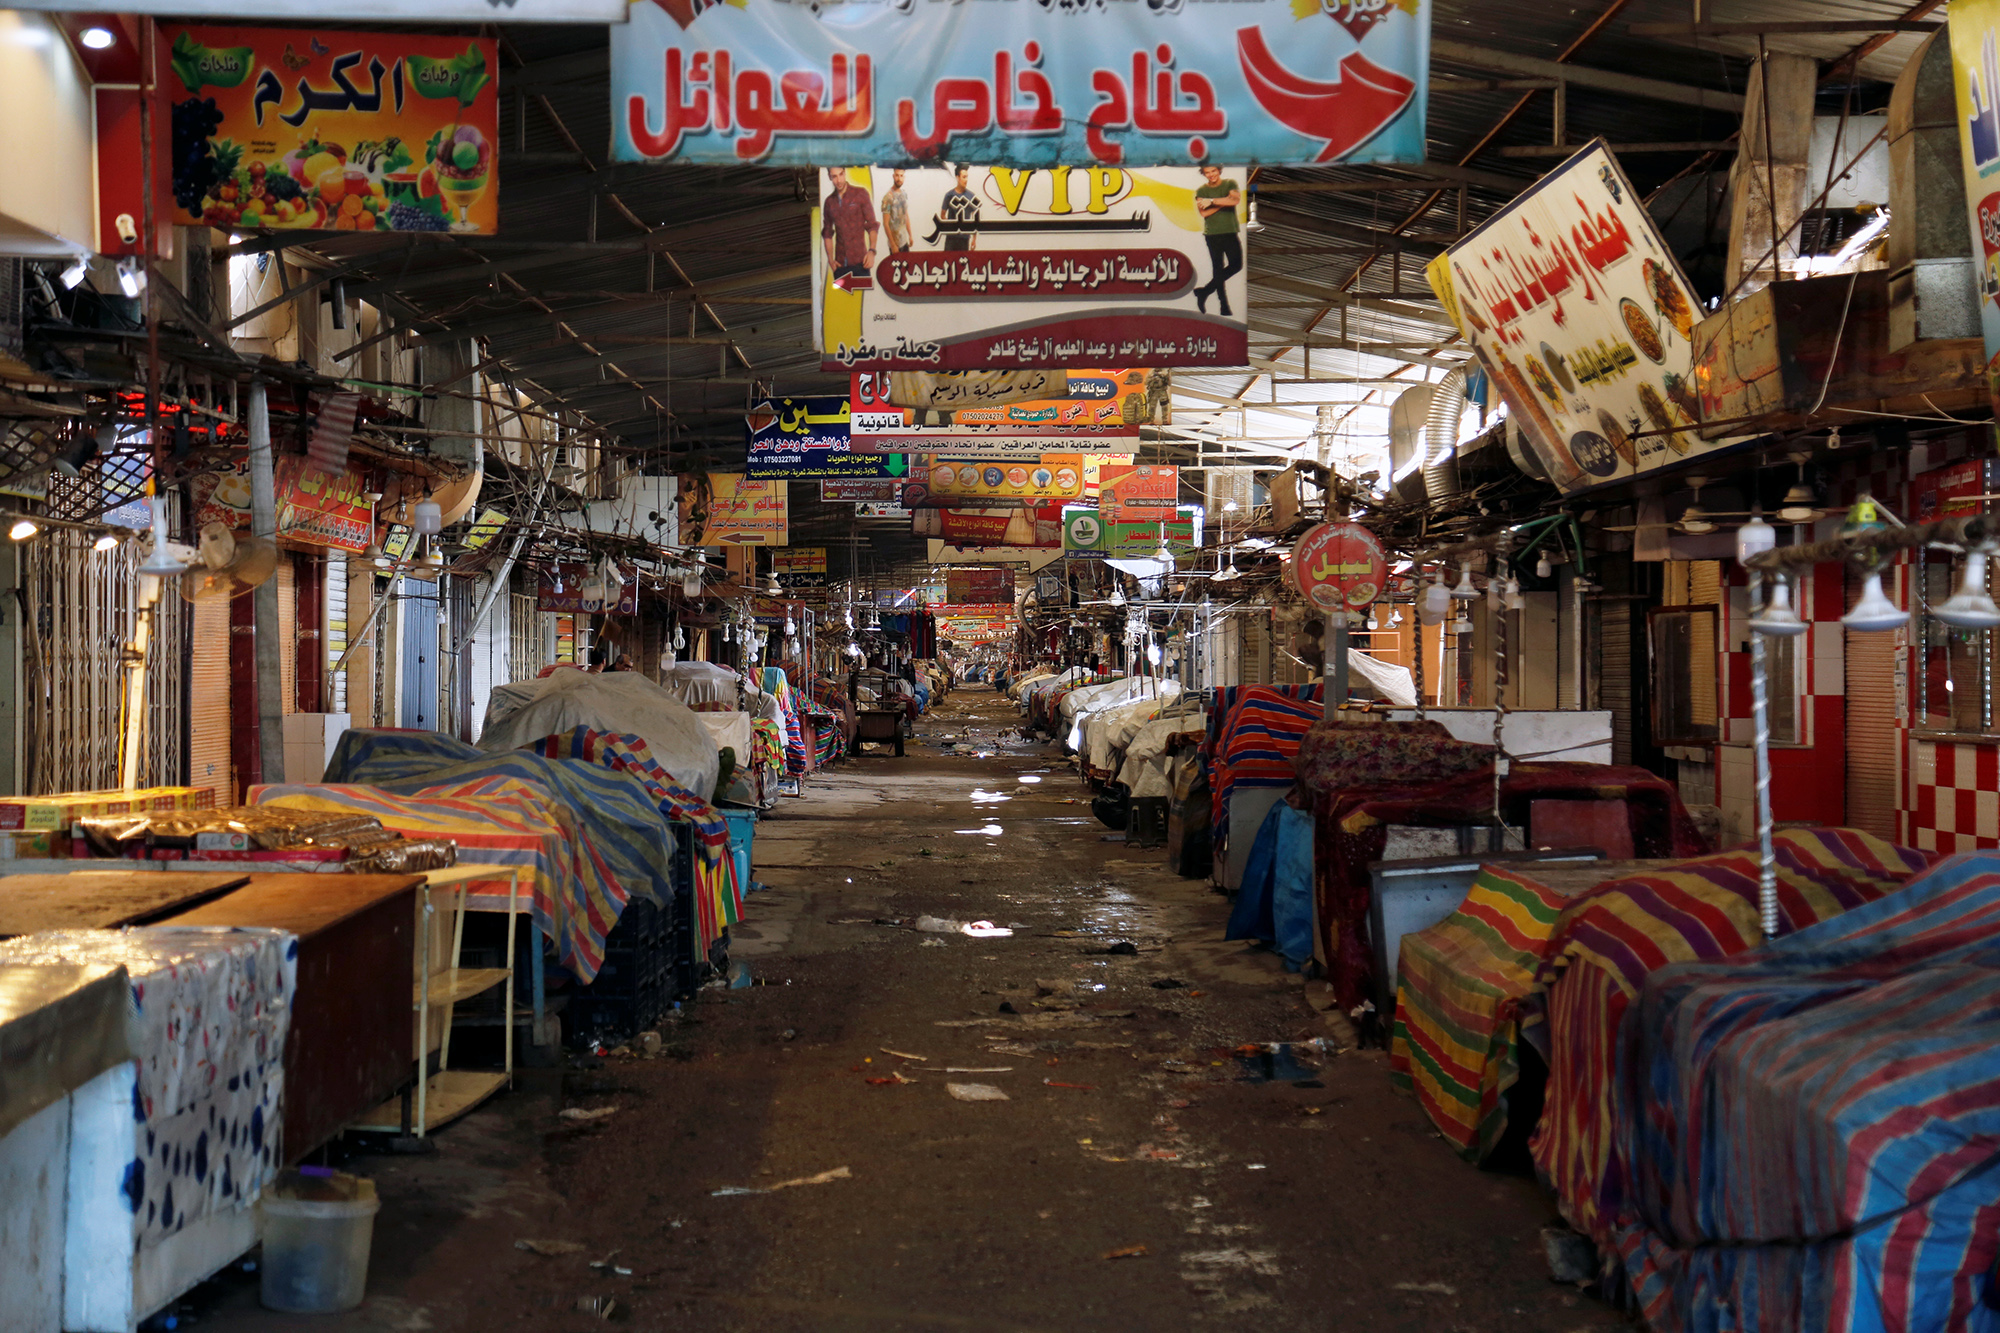 The Nabi Younes market is seen empty during a curfew imposed by Iraqi authorities, following the outbreak of coronavirus, in east Mosul, Iraq March 15, 2020. REUTERS/Abdullah Rashid